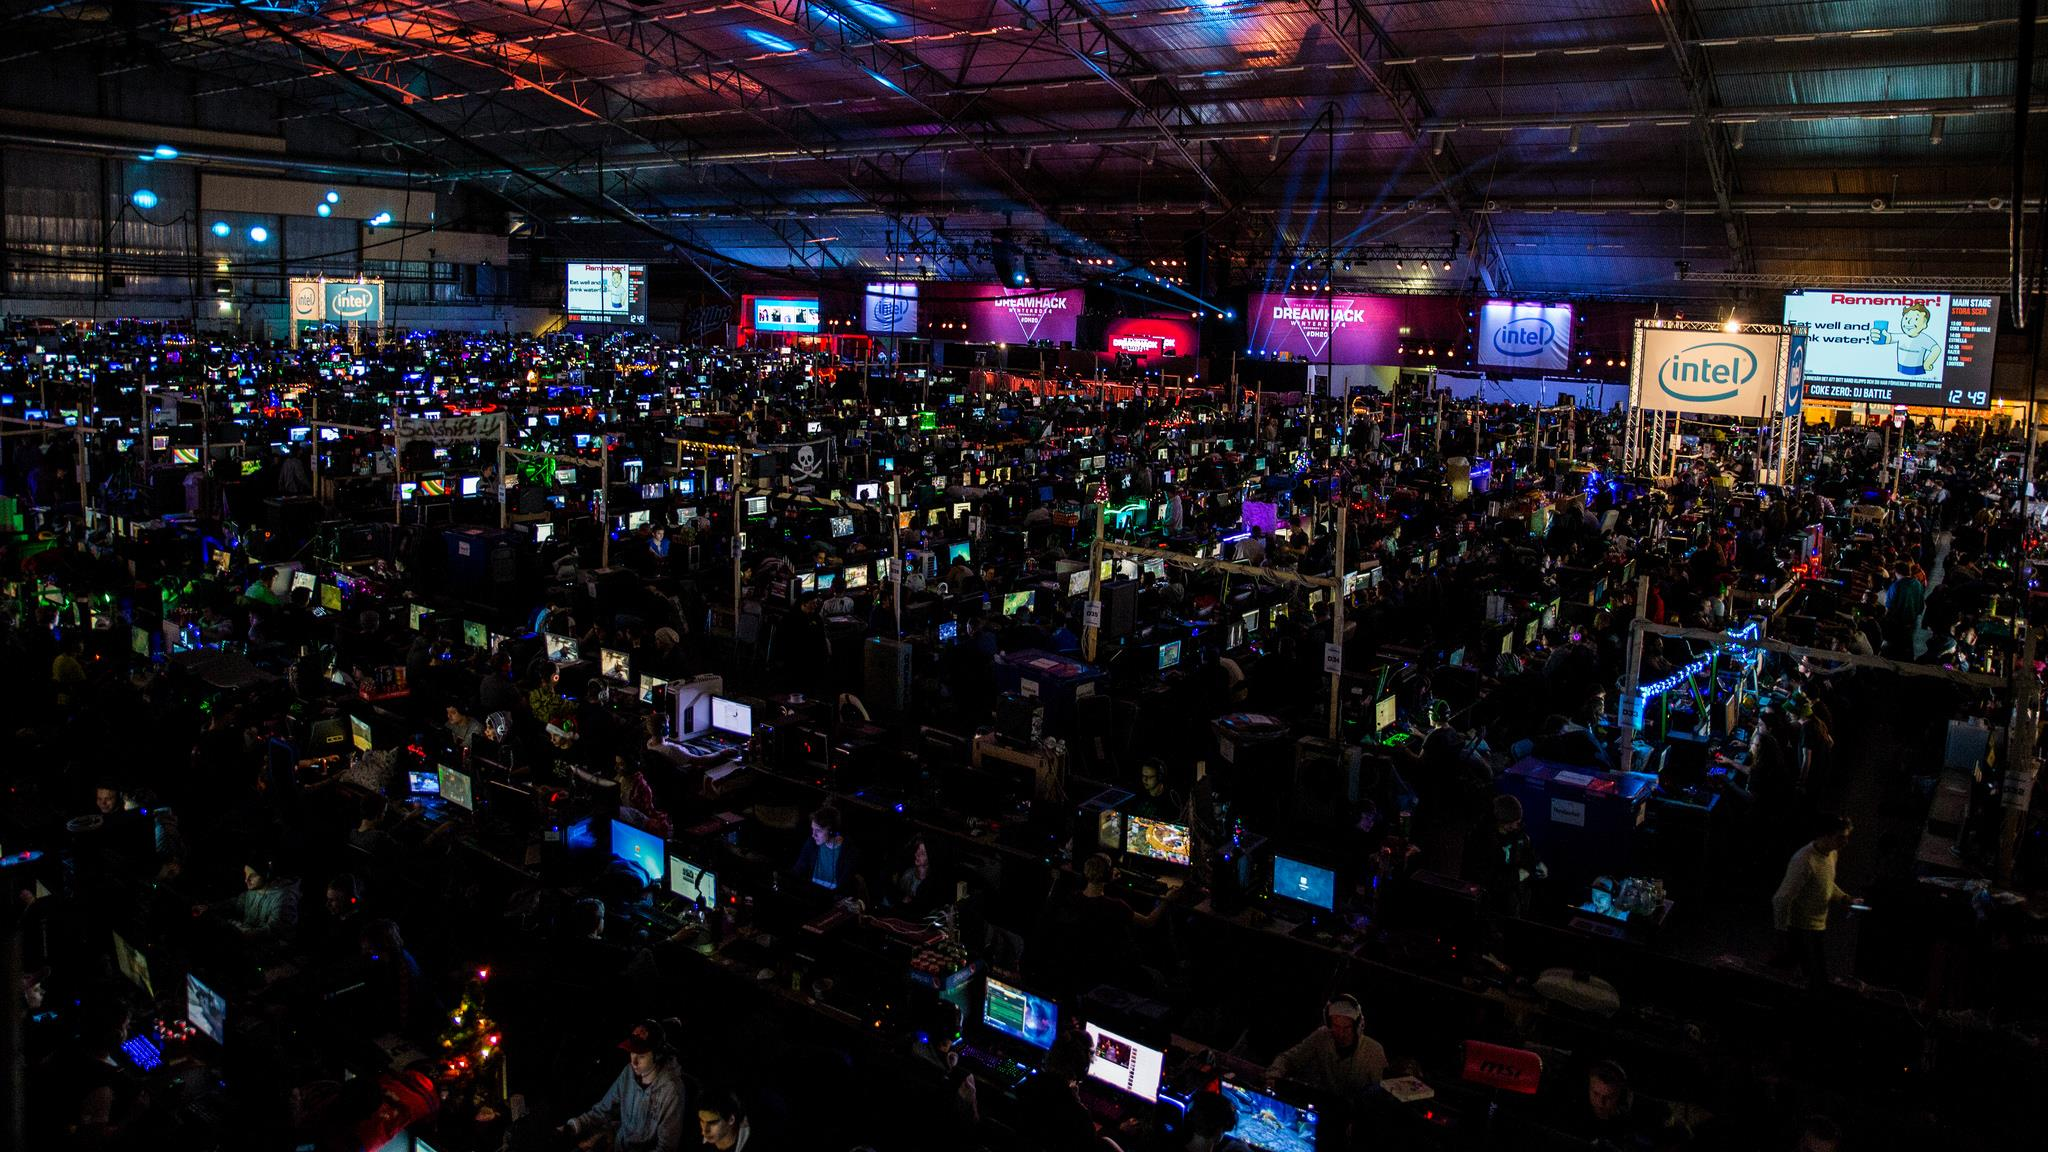 The largest hall of Dreamhack. There are two more large halls and many small areas with computers.